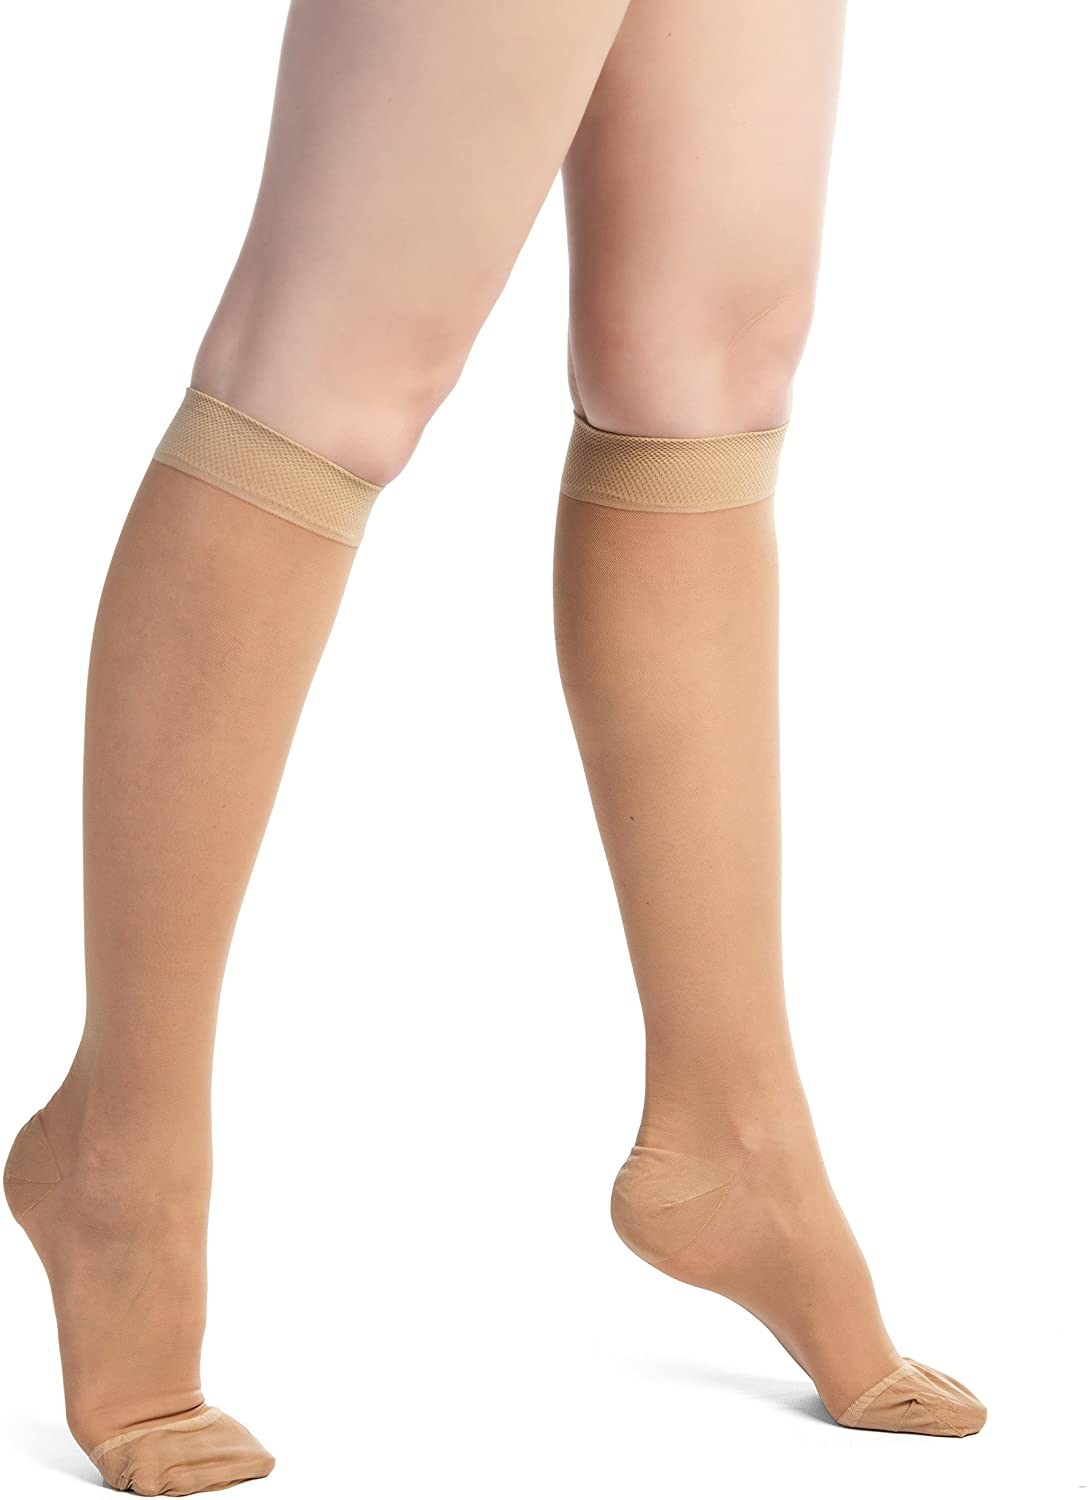 EvoNation Women's USA Made Wide Sheer Graduated Compression Socks 15-20 mmHg Moderate Pressure Medical Quality Knee High Support Stockings Hose - Circulation Travel (Large Wide, Tan Nude Beige)